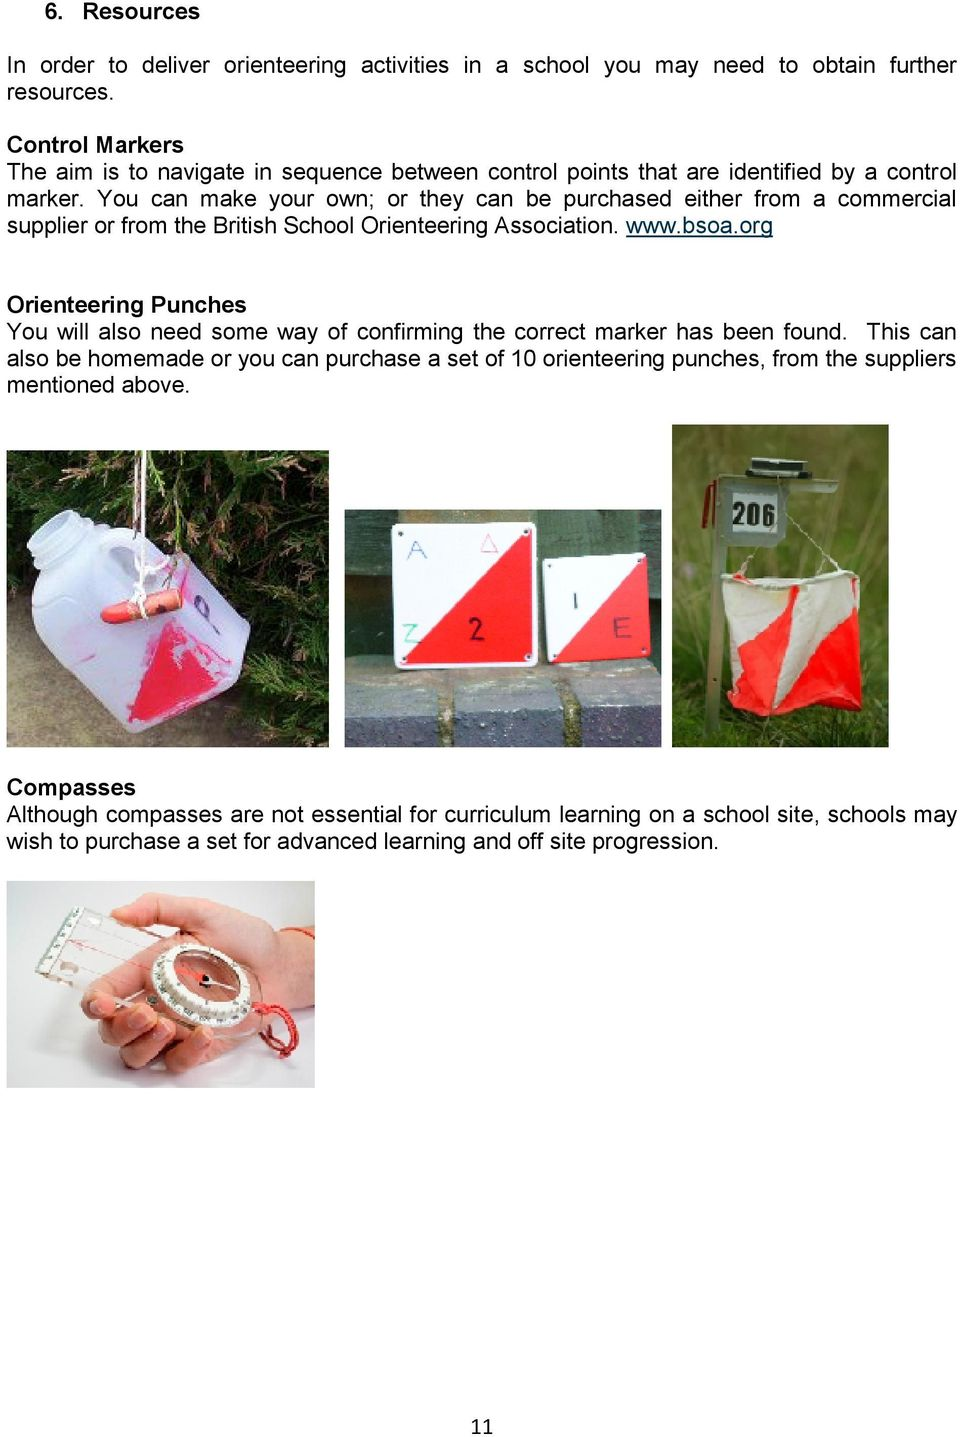 You can make your own; or they can be purchased either from a commercial supplier or from the British School Orienteering Association. www.bsoa.